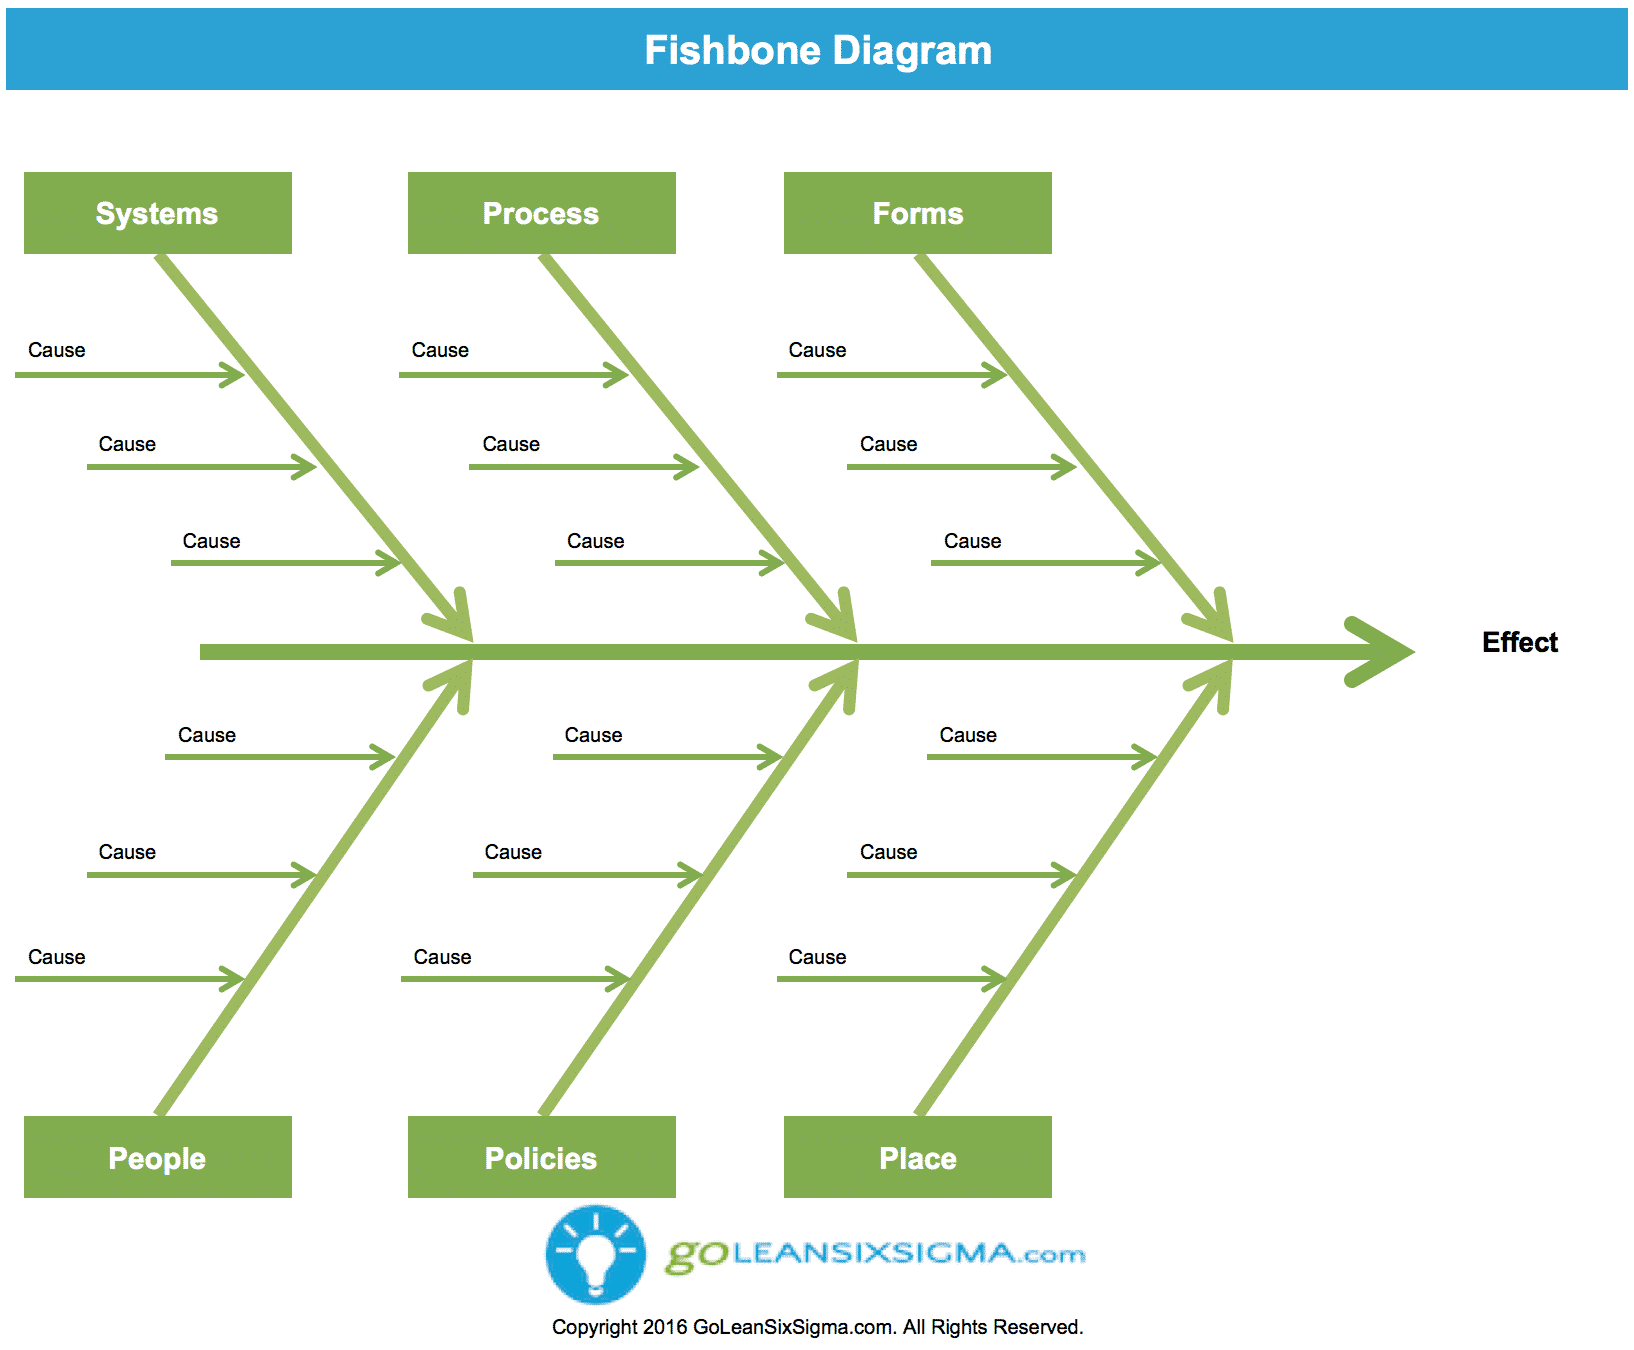 Fishbone Diagram V3.0 GoLeanSixSigma.com